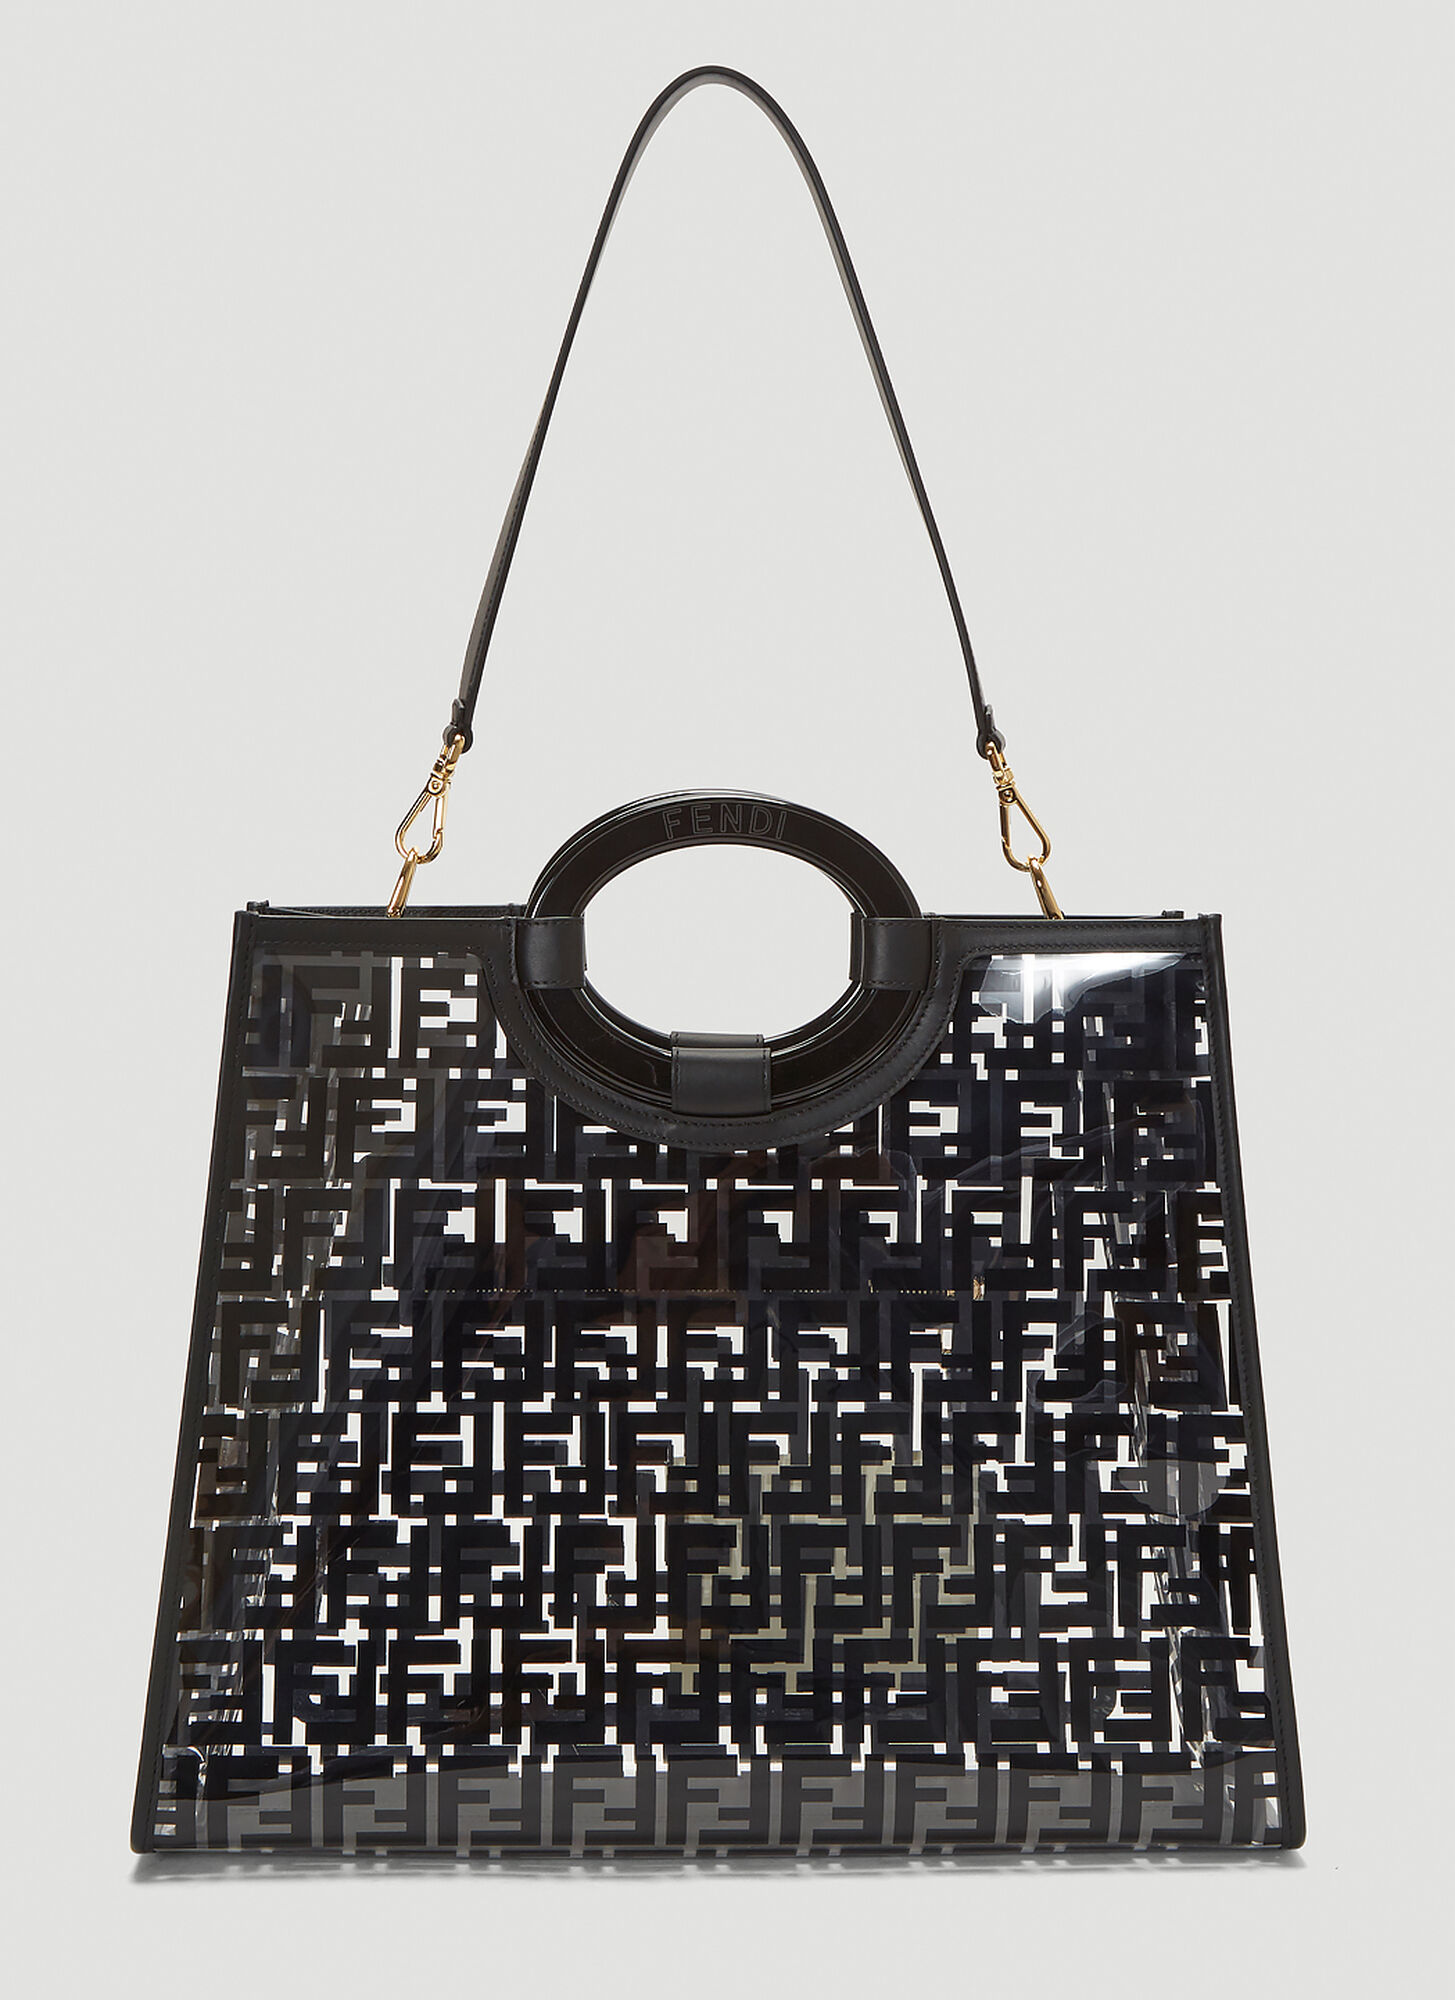 Fendi Runaway Shopper Tote Bag in Black